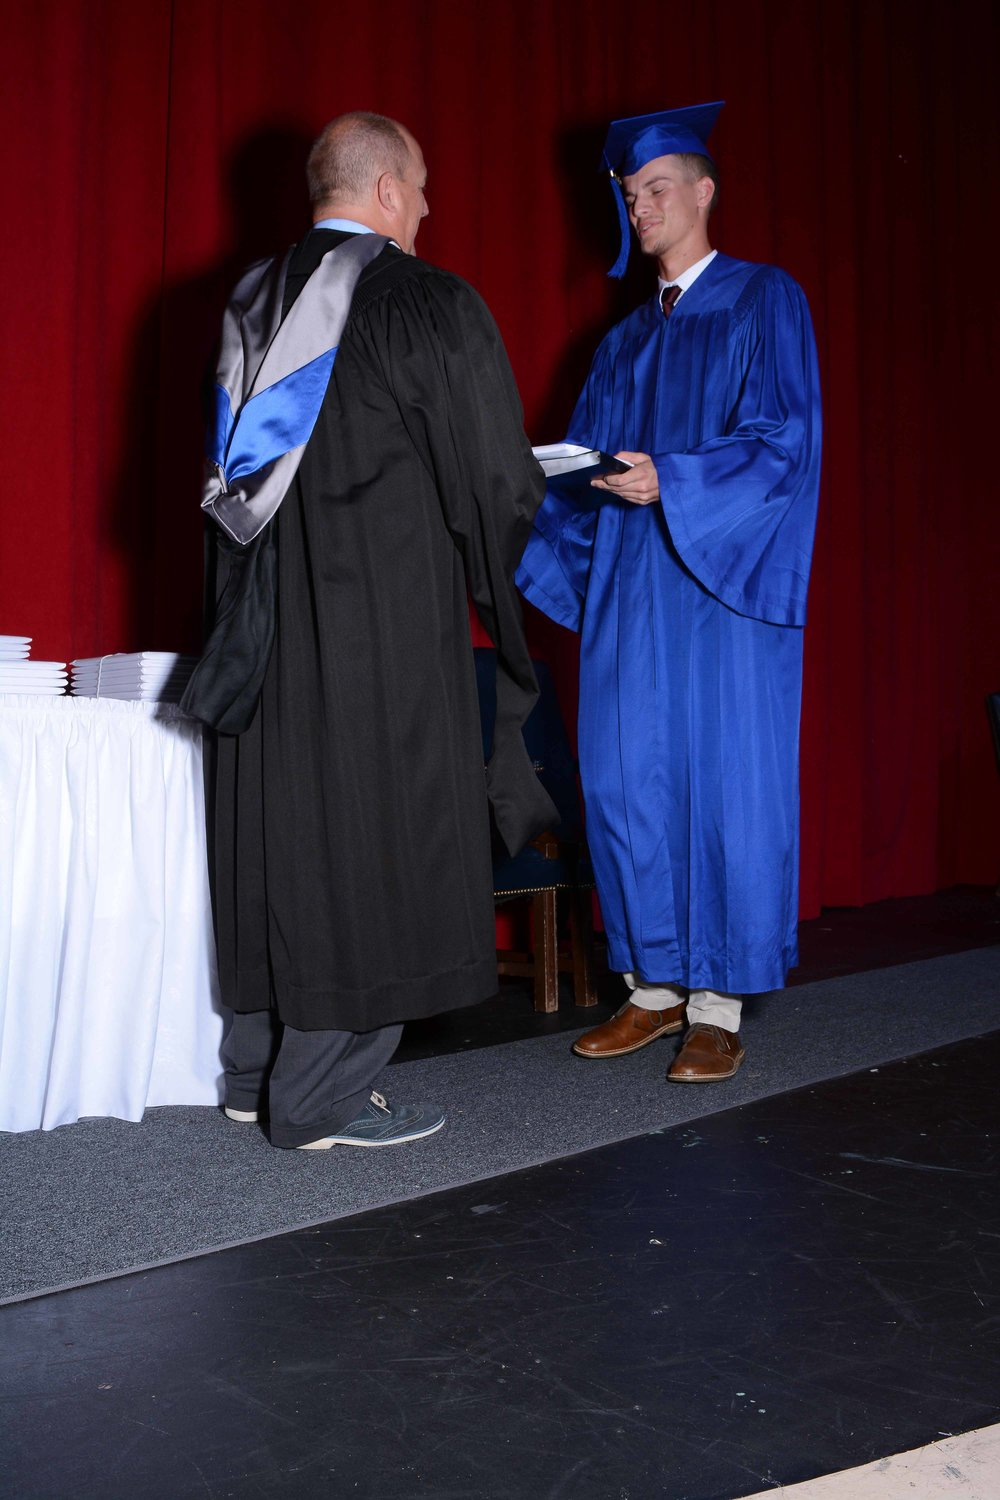 May14 Commencement135.jpg